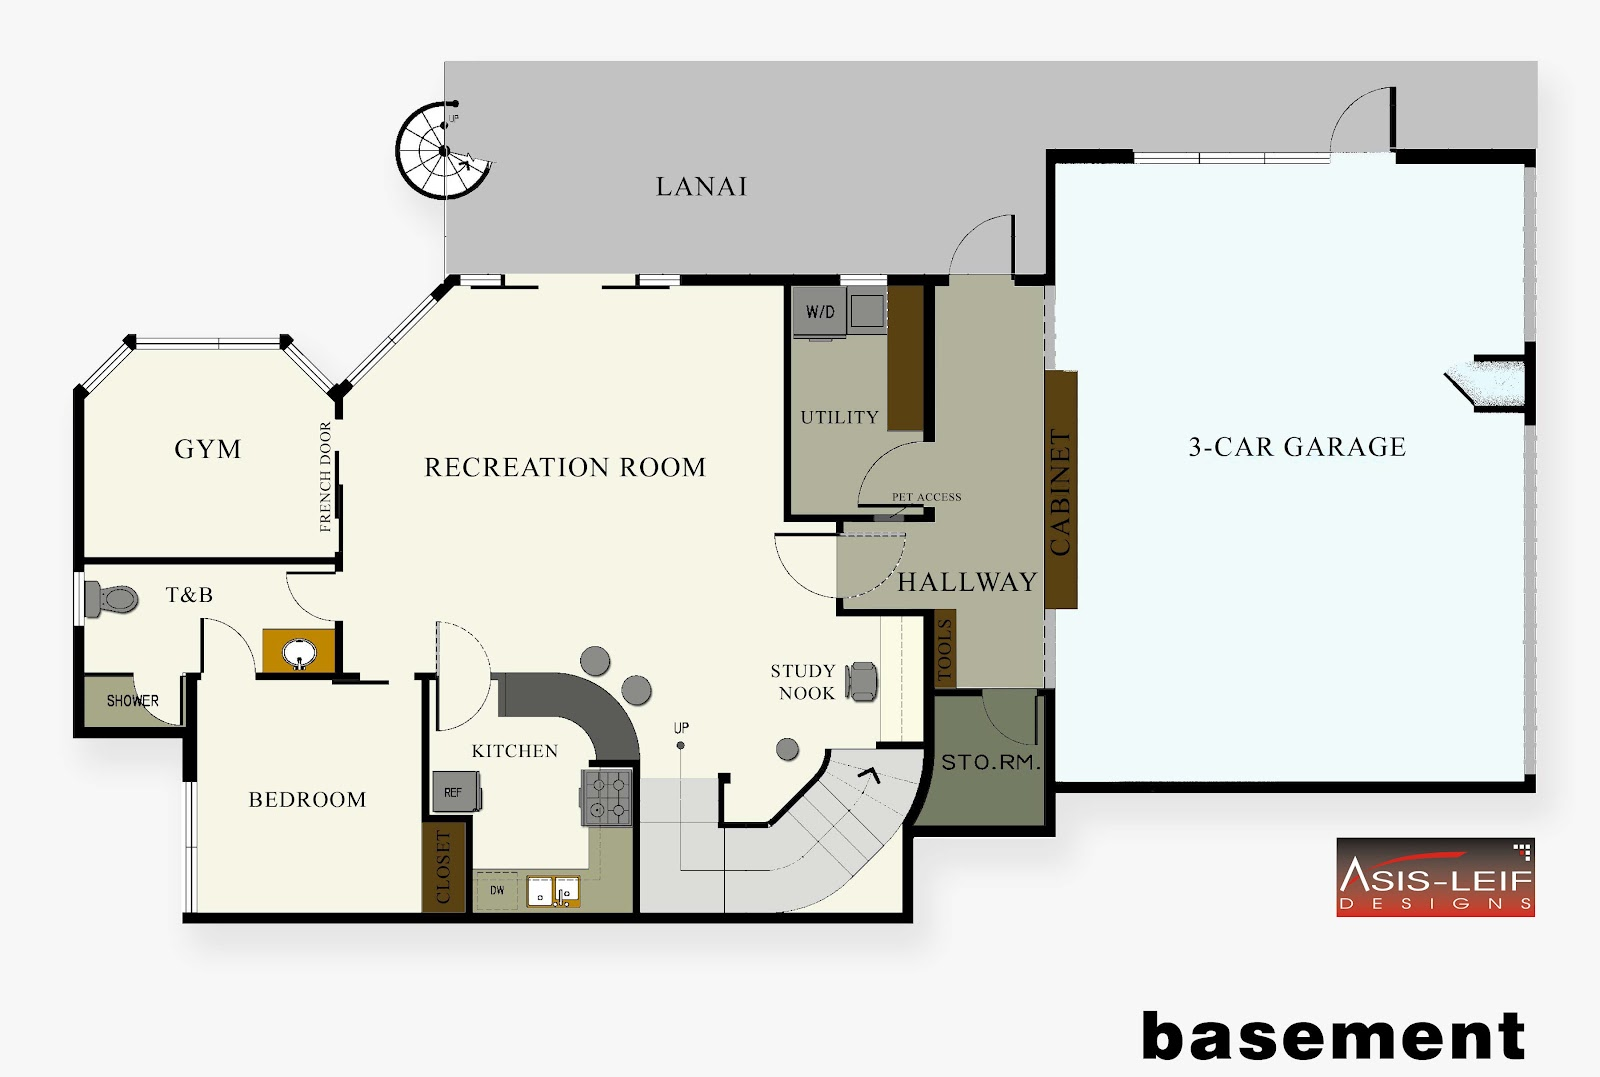 Basement floor plans ideas house plans 1849 for Design my floor plan